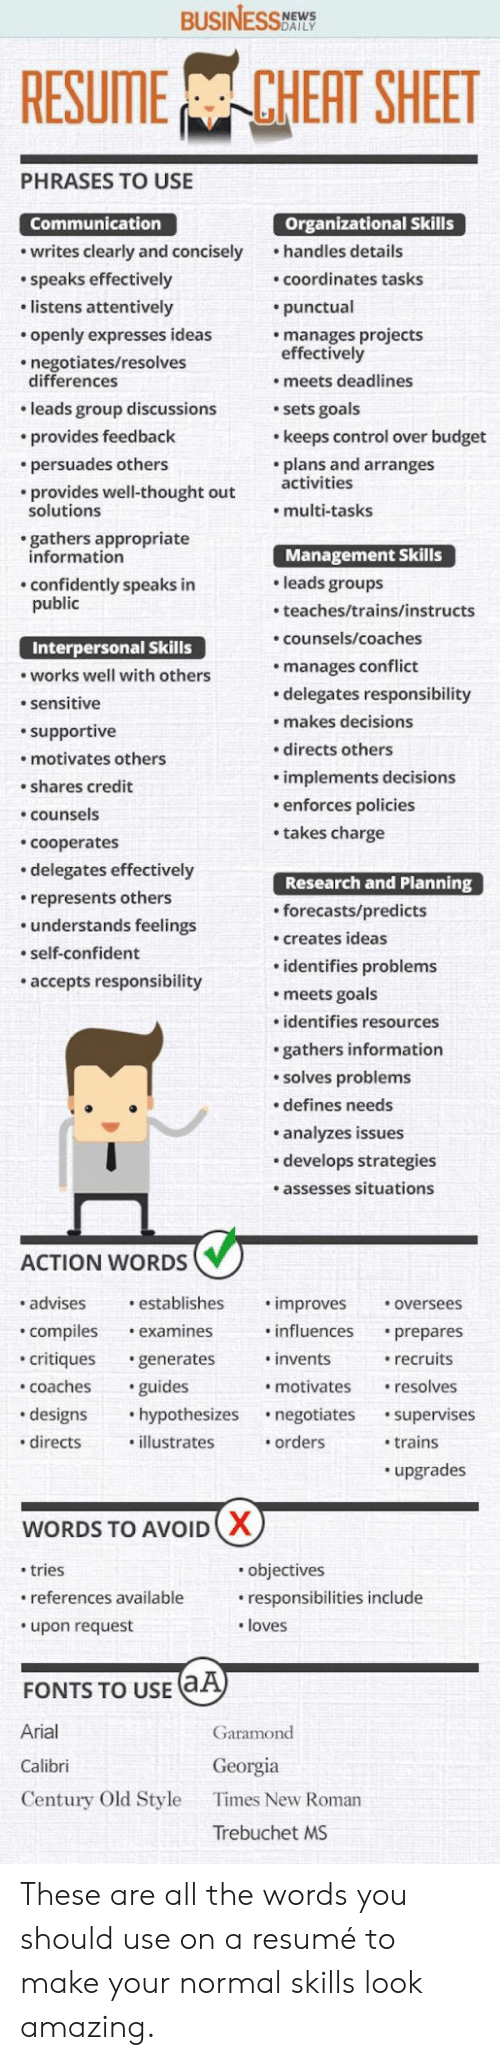 Upgrades: NEWS  SDAILY  RESUME CHEAT SHEET  PHRASES TO USE  Organizational Skills  handles details  Communication  writes clearly and concisely  COordinates tasks  speaks effectively  listens attentively  punctual  manages projects  effectively  openly expresses ideas  negotiates/resolves  differences  meets deadlines  sets goals  keeps control over budget  plans and arranges  leads group discussions  provides feedback  persuades others  activities  provides well-thought out  solutions  multi-tasks  gathers appropriate  information  Management Skills  leads groups  confidently speaks in  public  teaches/trains/instructs  counsels/coaches  Interpersonal Skills  manages conflict  works well with others  delegates responsibility  makes decisions  sensitive  supportive  directs others  motivates others  implements decisions  enforces policies  shares credit  counsels  takes charge  Cooperates  .delegates effectively  Research and Planning  represents others  forecasts/predicts  understands feelings  creates ideas  self-confident  identifies problems  accepts responsibility  meets goals  identifies resources  gathers information  solves problems  defines needs  analyzes issues  .develops strategies  assesses situations  ACTION WORDS  establishes  advises  improves  oversees  compiles  influences  examines  prepares  critiques  invents  recruits  generates  coaches  guides  motivates  resolves  designs  .hypothesizes  negotiates  supervises  directs  illustrates  orders  trains  upgrades  WORDS TO AVOIDX  .objectives  tries  references available  responsibilities include  loves  upon request  (а)  FONTS TO USE  Arial  Garamond  Georgia  Calibri  Century Old Style  Times New Roman  Trebuchet MS These are all the words you should use on a resumé to make your normal skills look amazing.